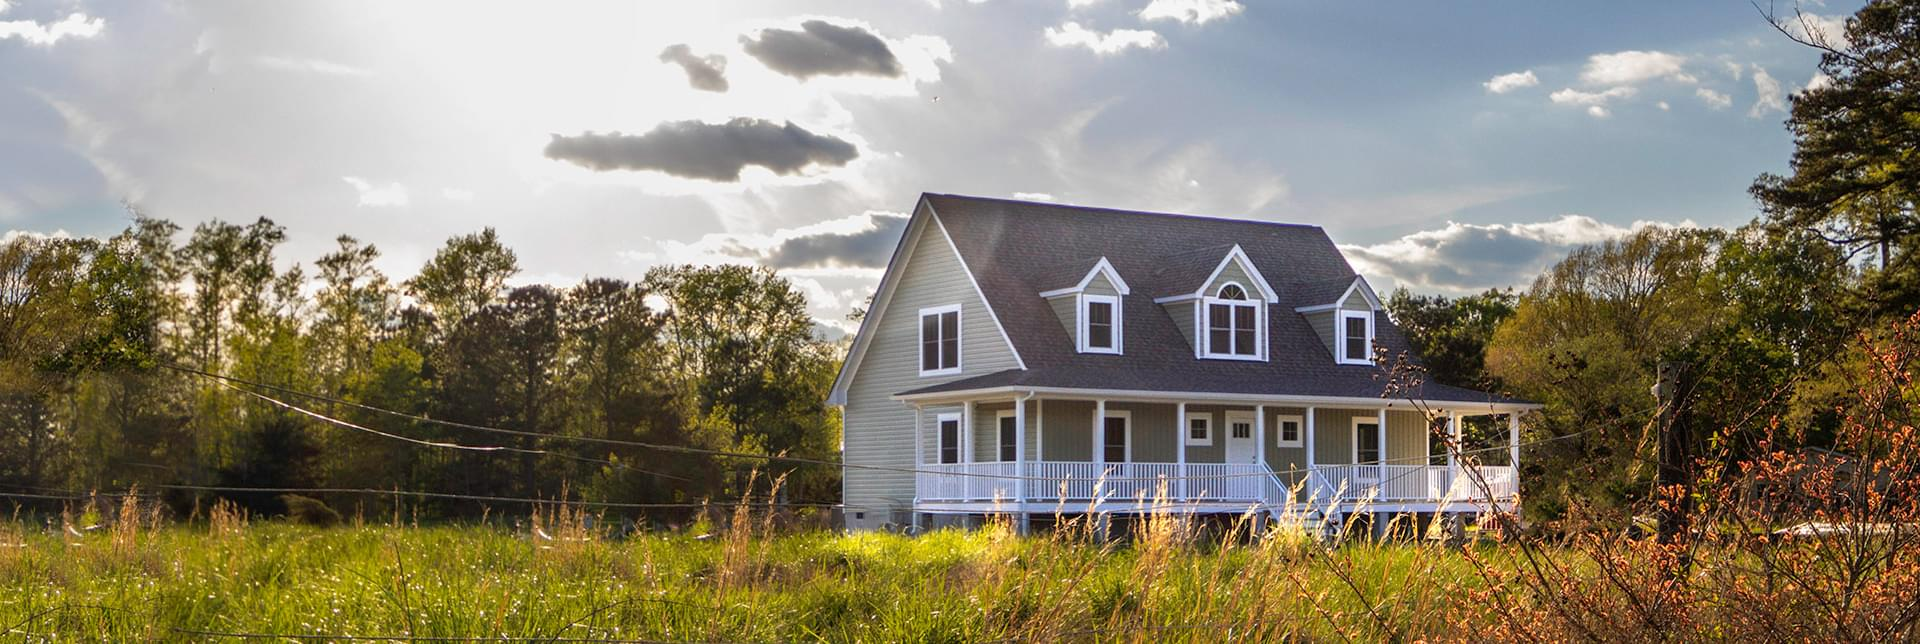 New Homes in Granville County NC